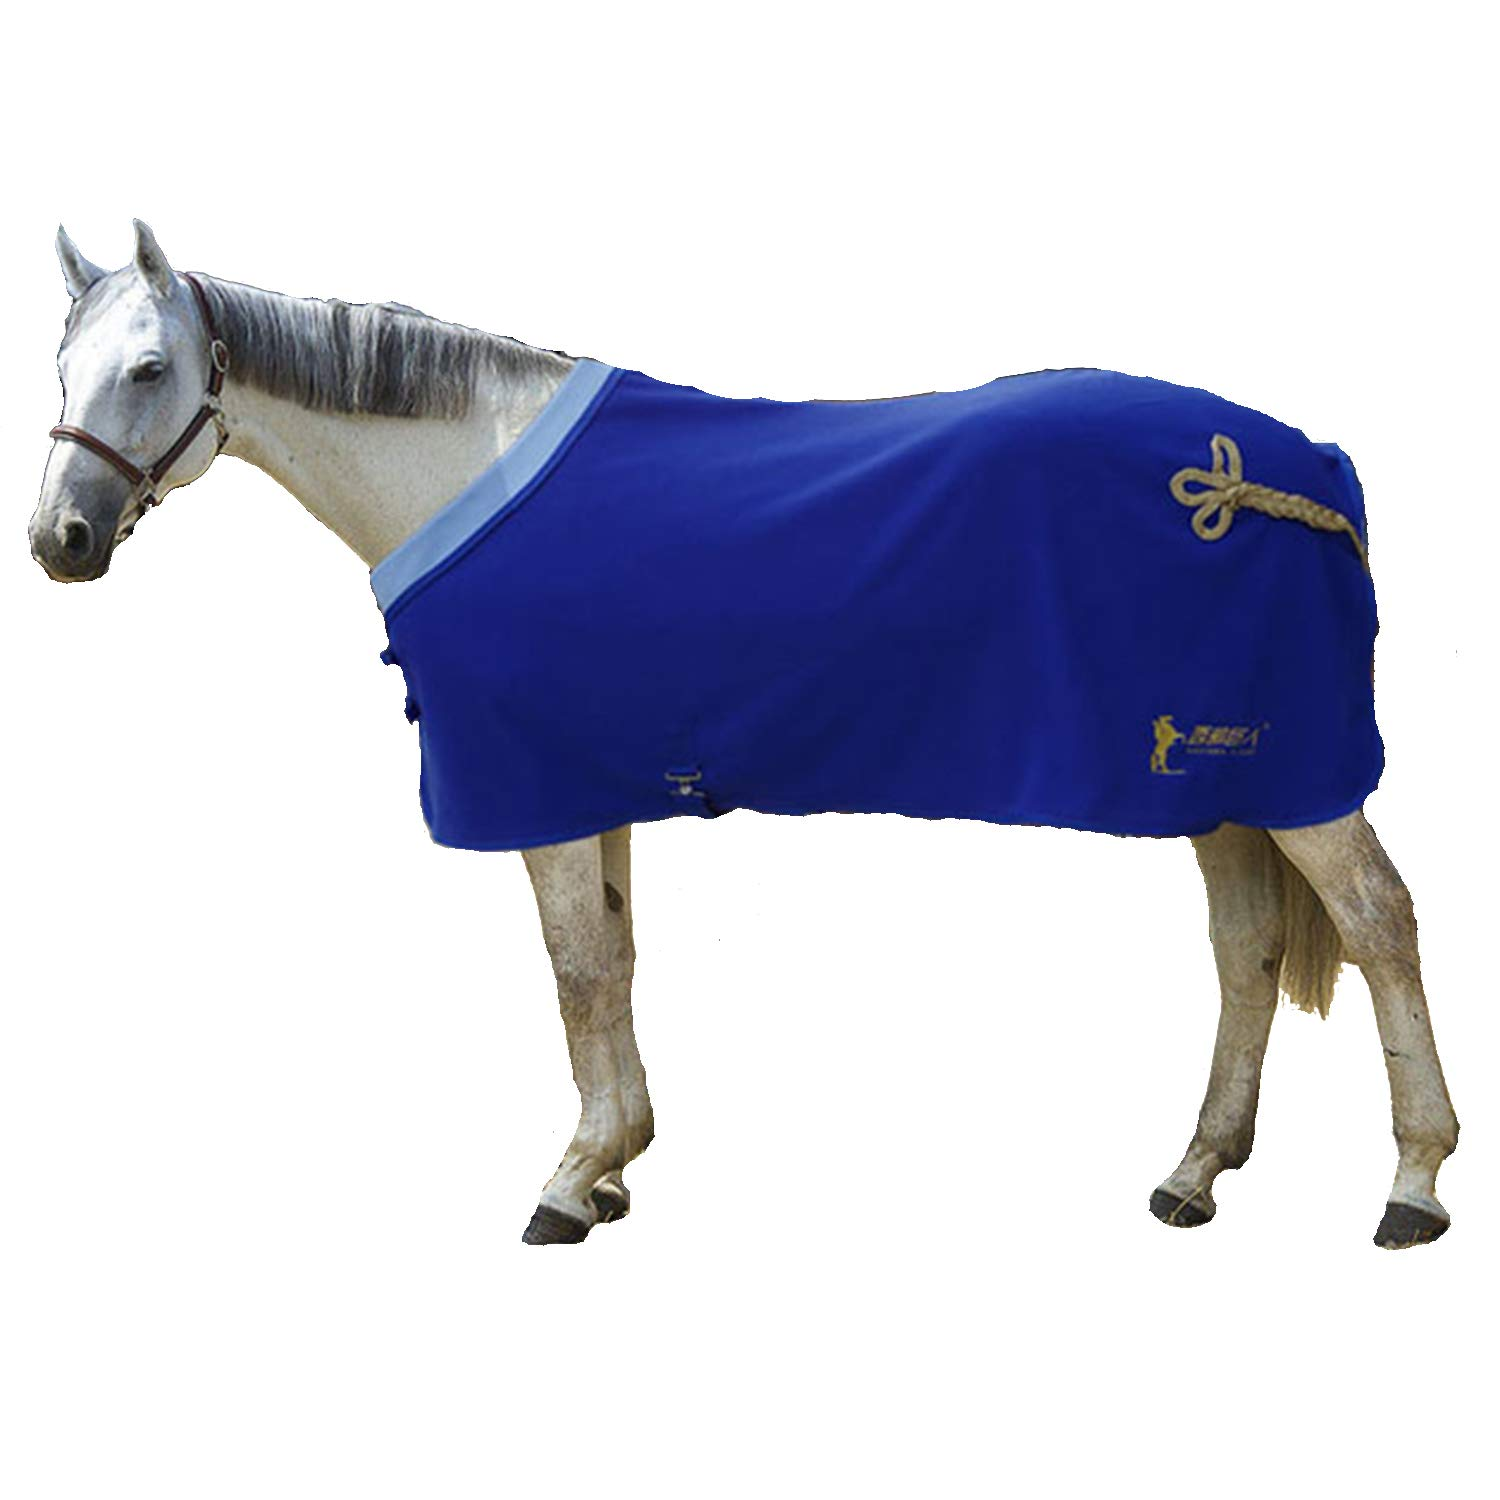 bluee 135cm bluee 135cm Spring and Autumn Horse Blanket Training Horse Blanket Comfortable Warm Soft Fleece Fabric